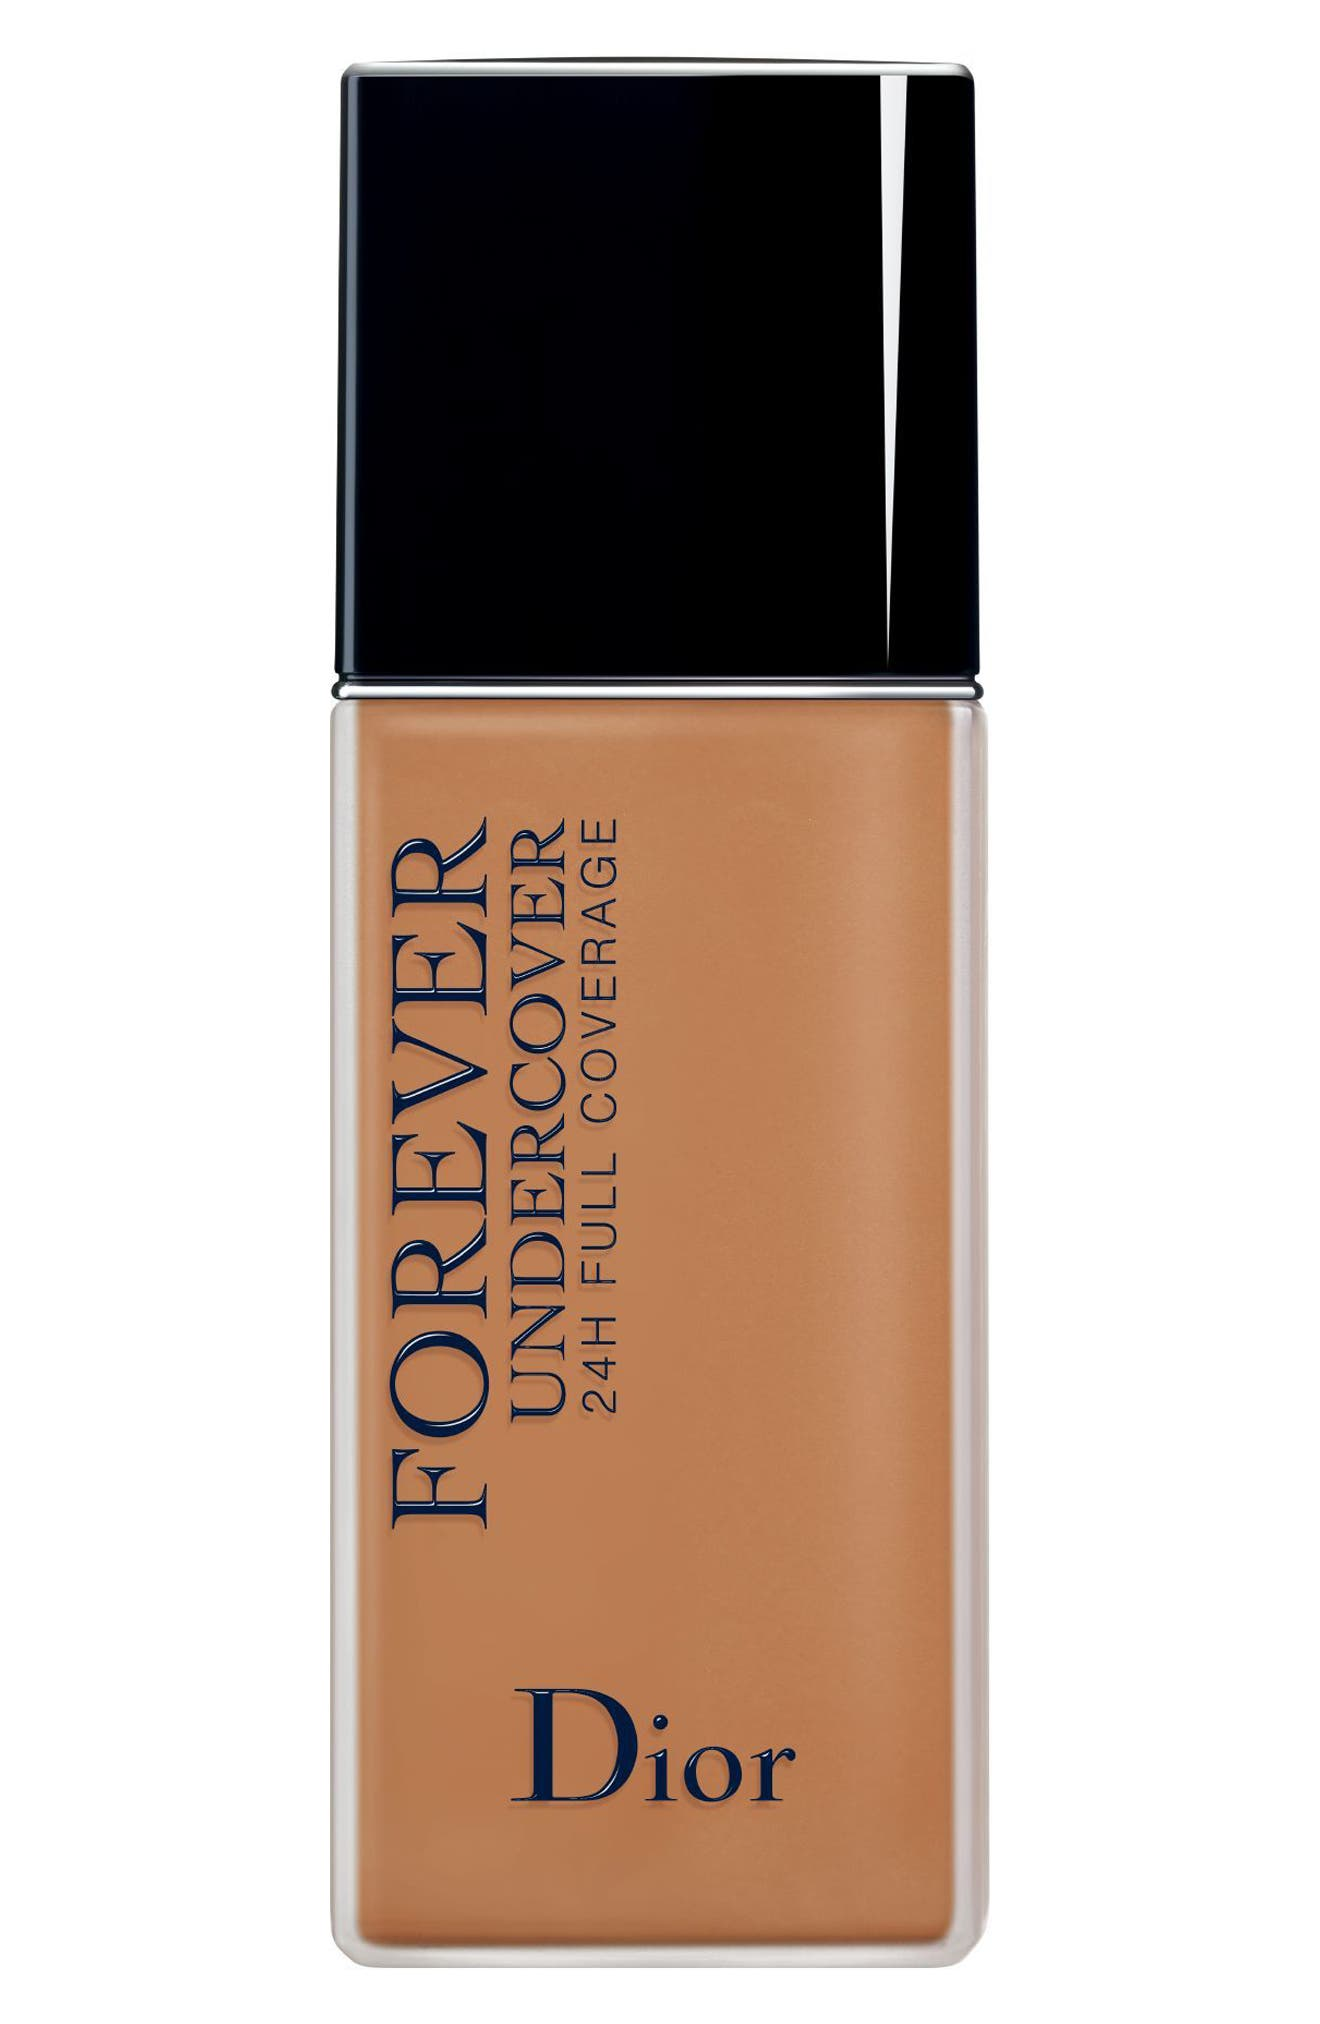 Dior Diorskin Forever Undercover 24 Hour Full Coverage Liquid Foundation Nordstrom